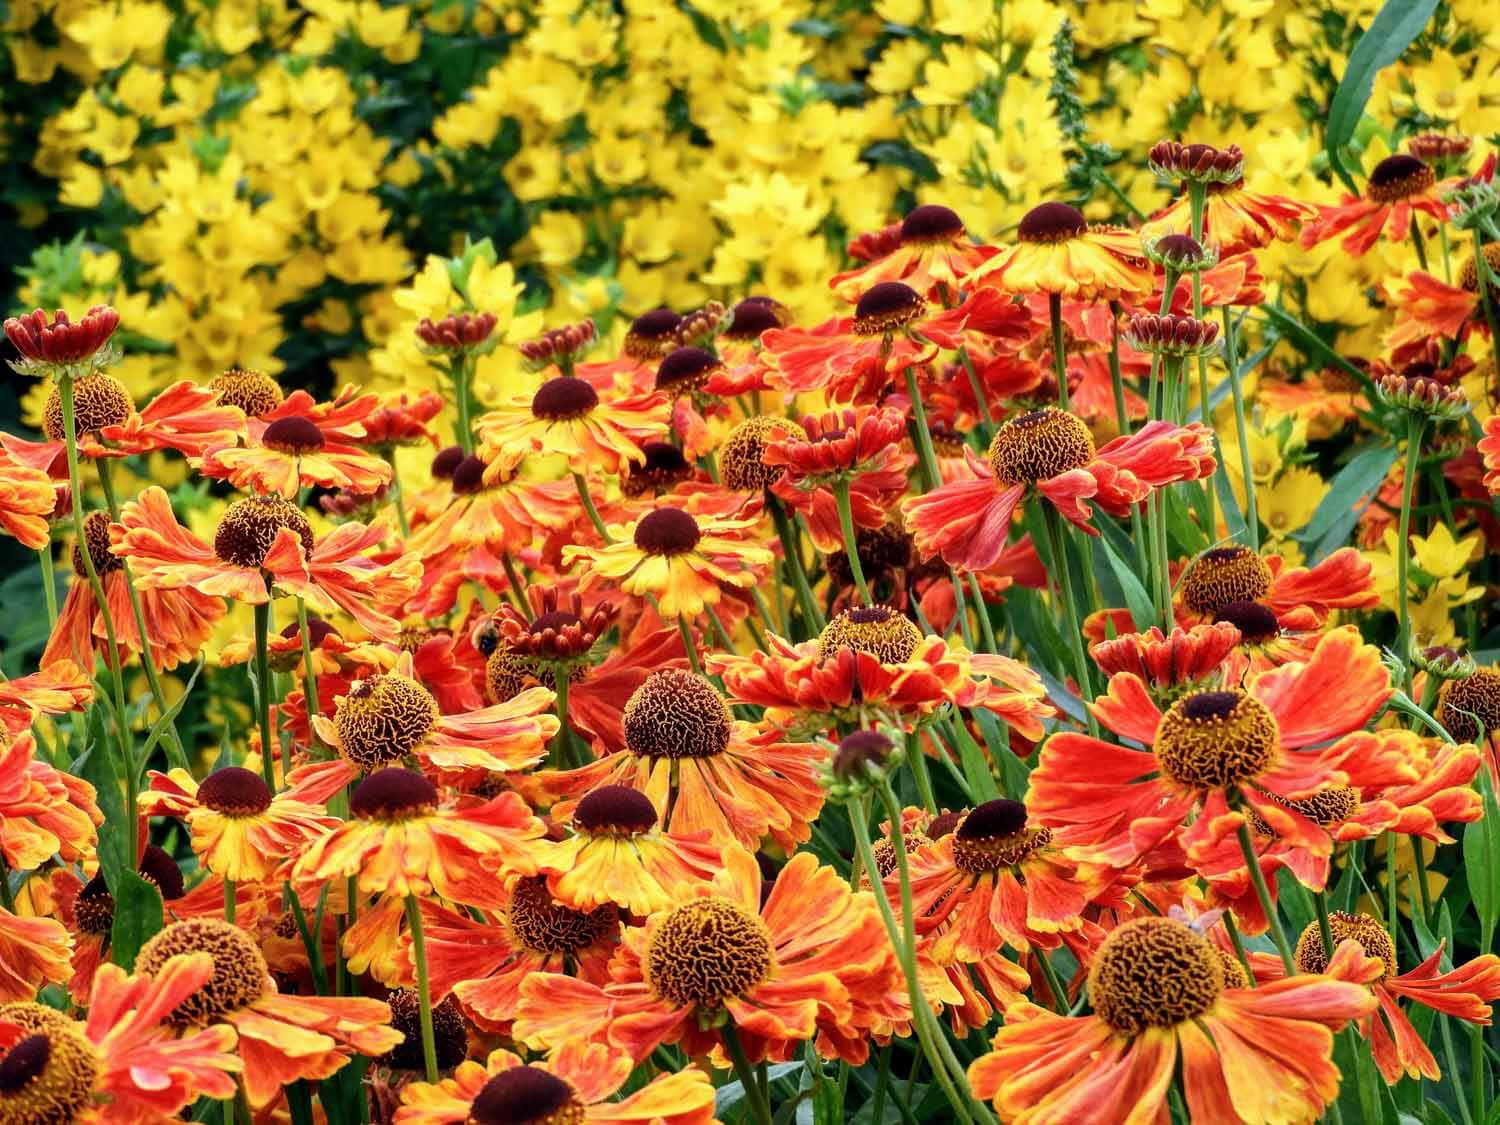 ireland-dublin- flowers-yellow-red.jpg